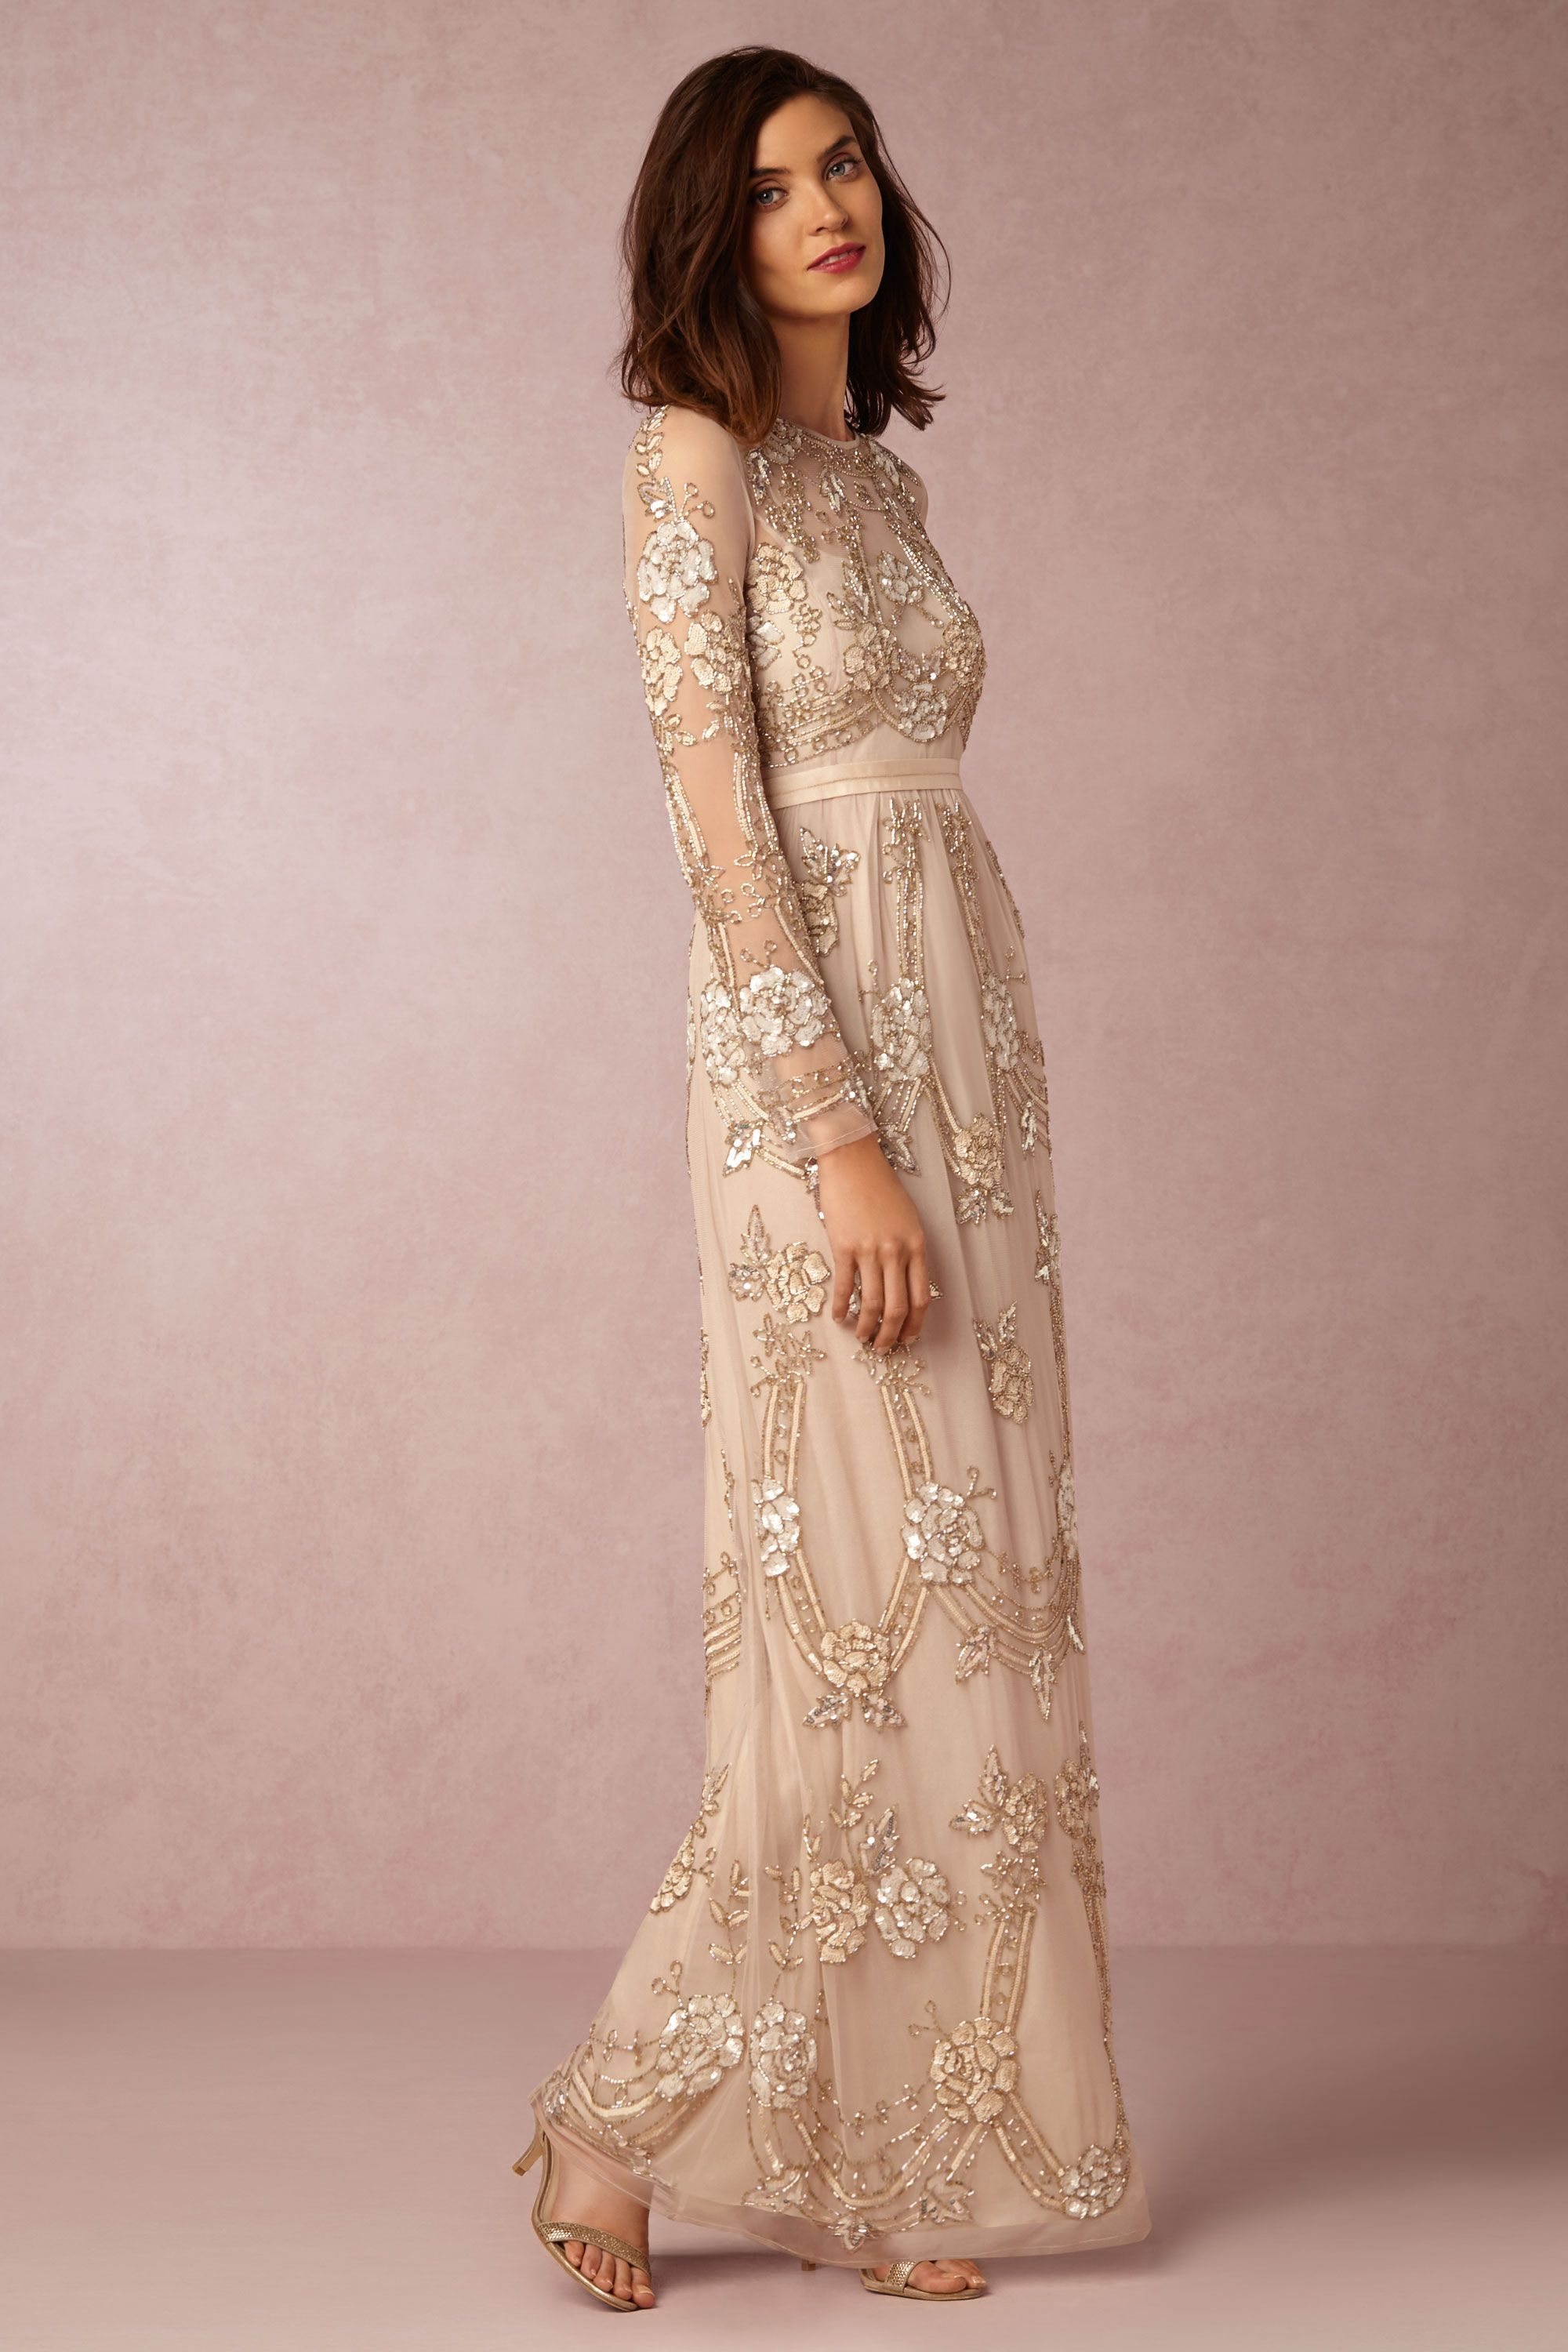 Adona Dress from Needle & Thread exclusively for BHLDN ...